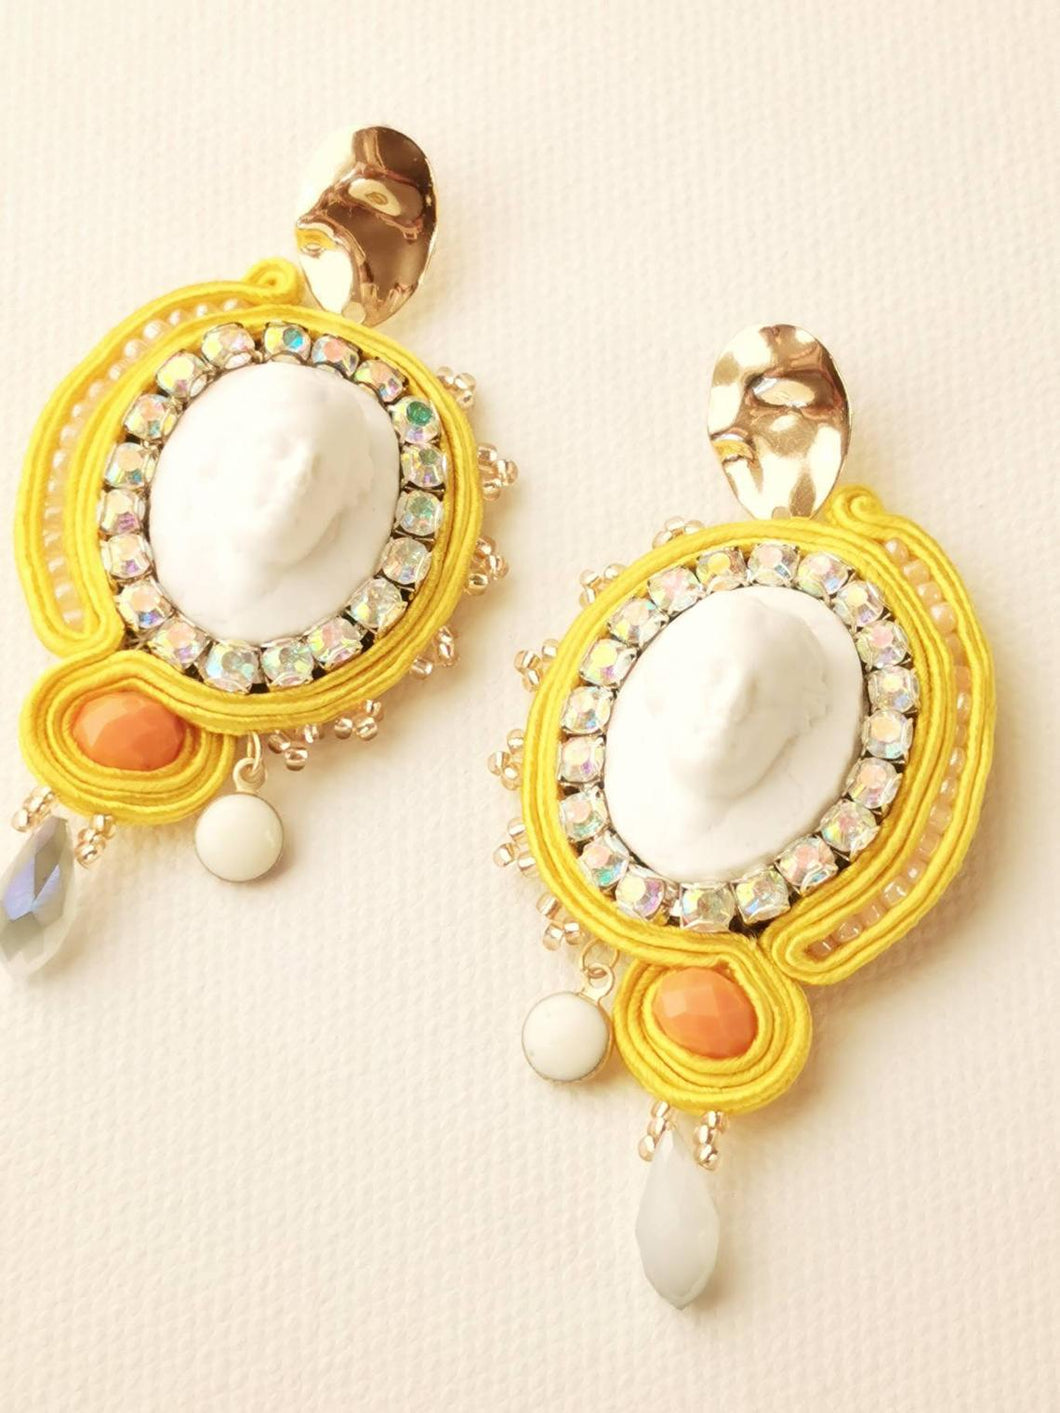 Wearable Art elegant yellow statement soutache earrings dangle with Aphrodite Cameo & crystal rhinestones. The revival in the appreciation of the cameo jewelry is here.